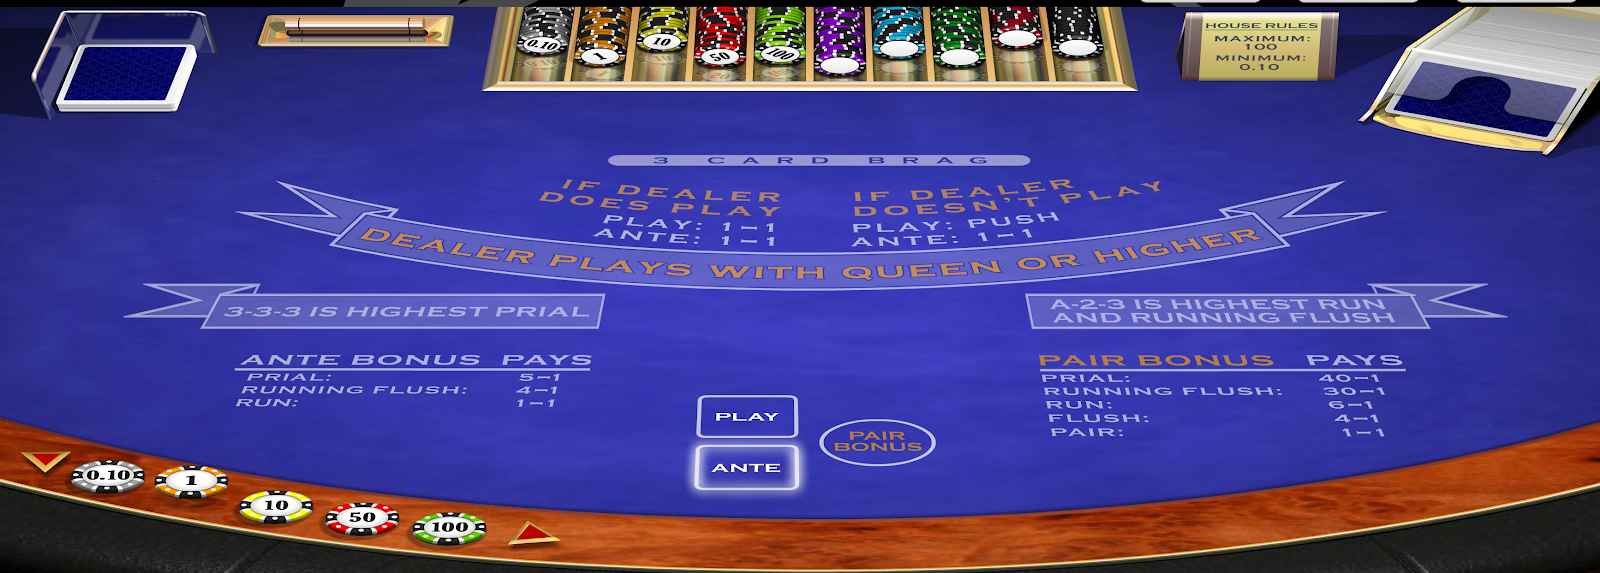 3 Card Brag is one of the best poker games you can play at Grosvenor Casinos